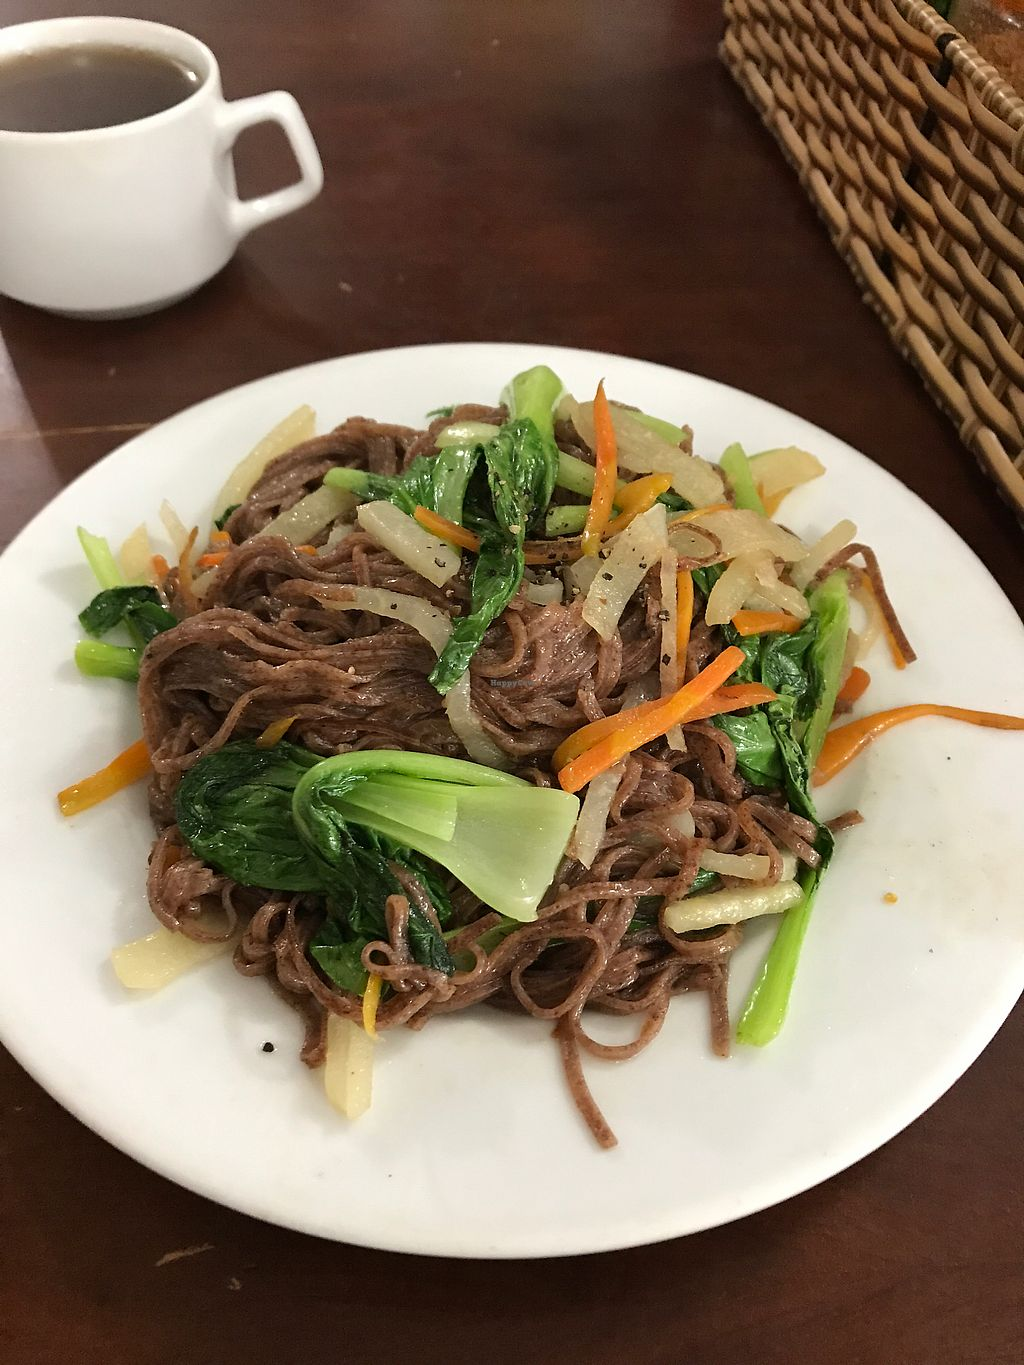 """Photo of Khai Minh 2  by <a href=""""/members/profile/ctpetro14"""">ctpetro14</a> <br/>red rice noodles over vegetables <br/> August 29, 2017  - <a href='/contact/abuse/image/43848/298520'>Report</a>"""